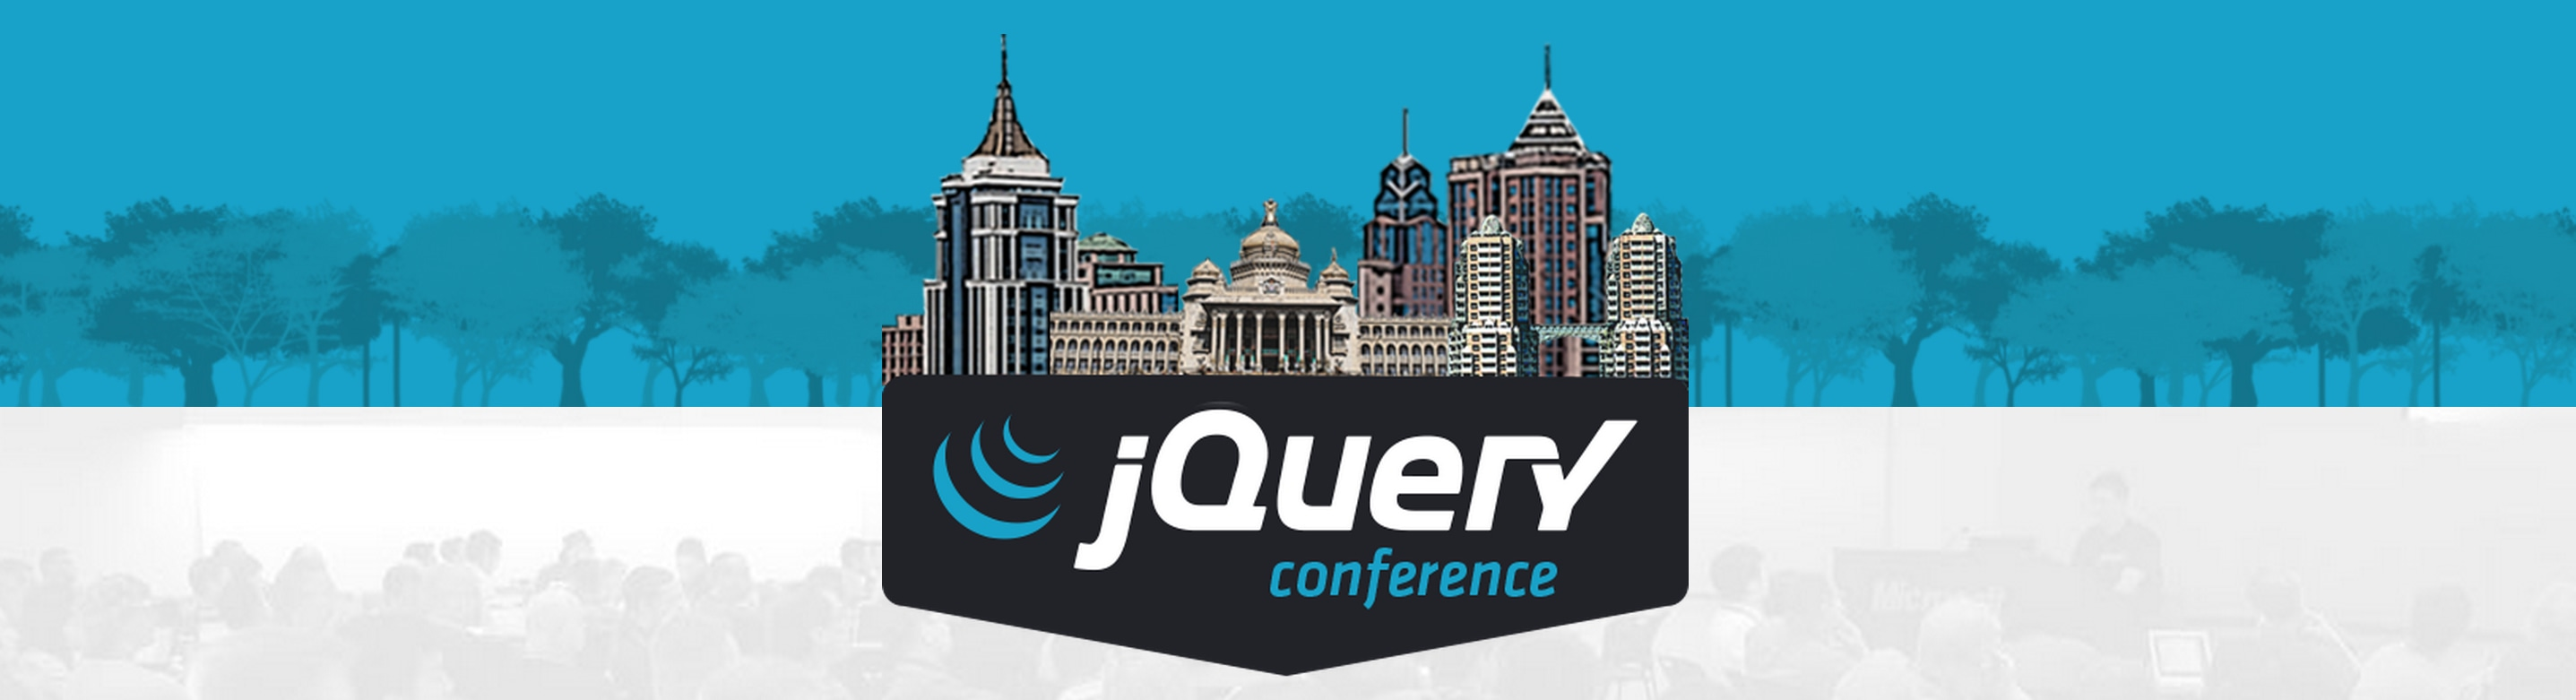 jQuery Conf 2015 Banner